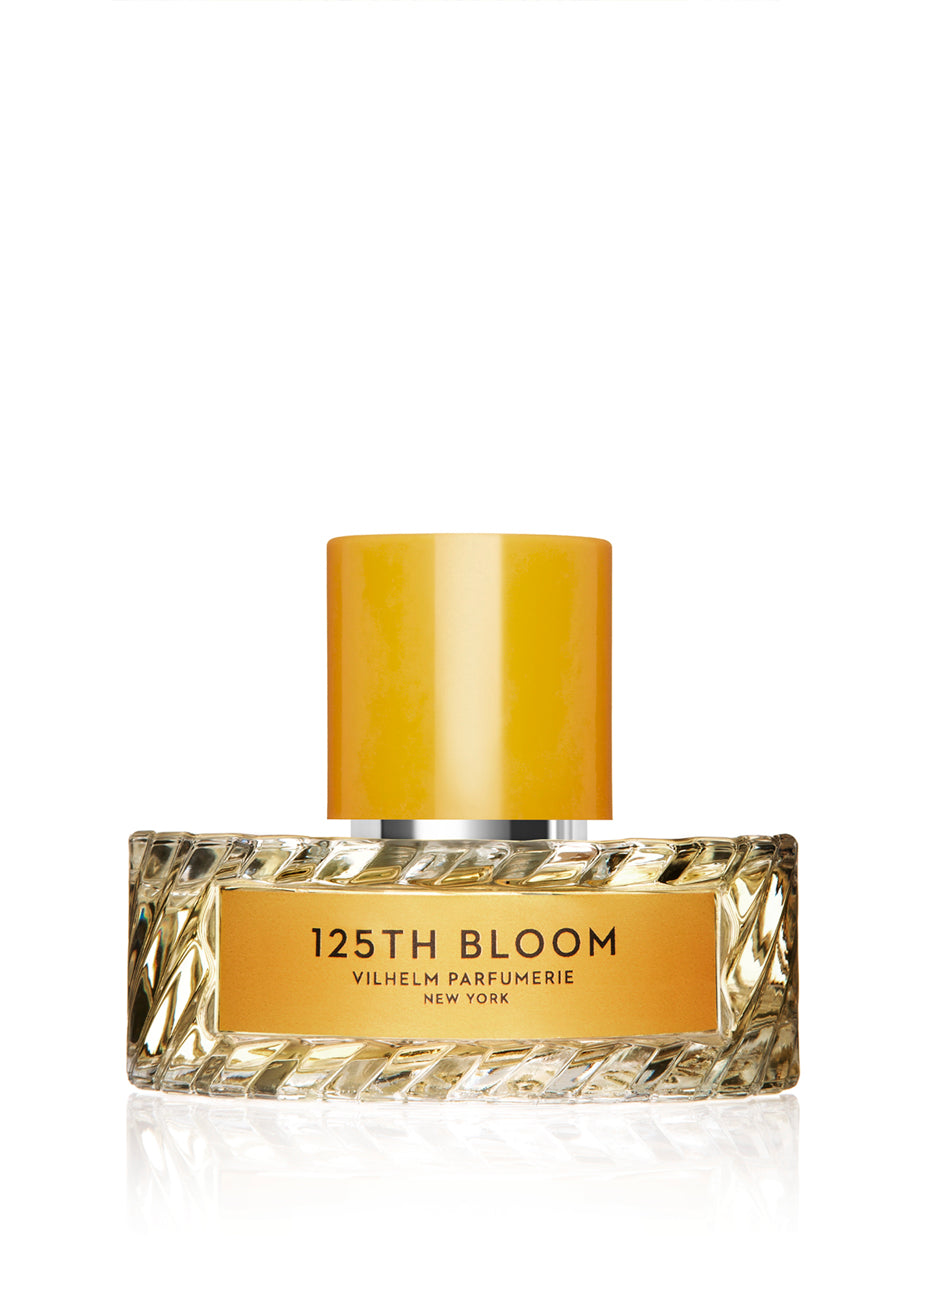 Vilhelm Parfumerie 125th & Bloom Eau De Parfum 50ml